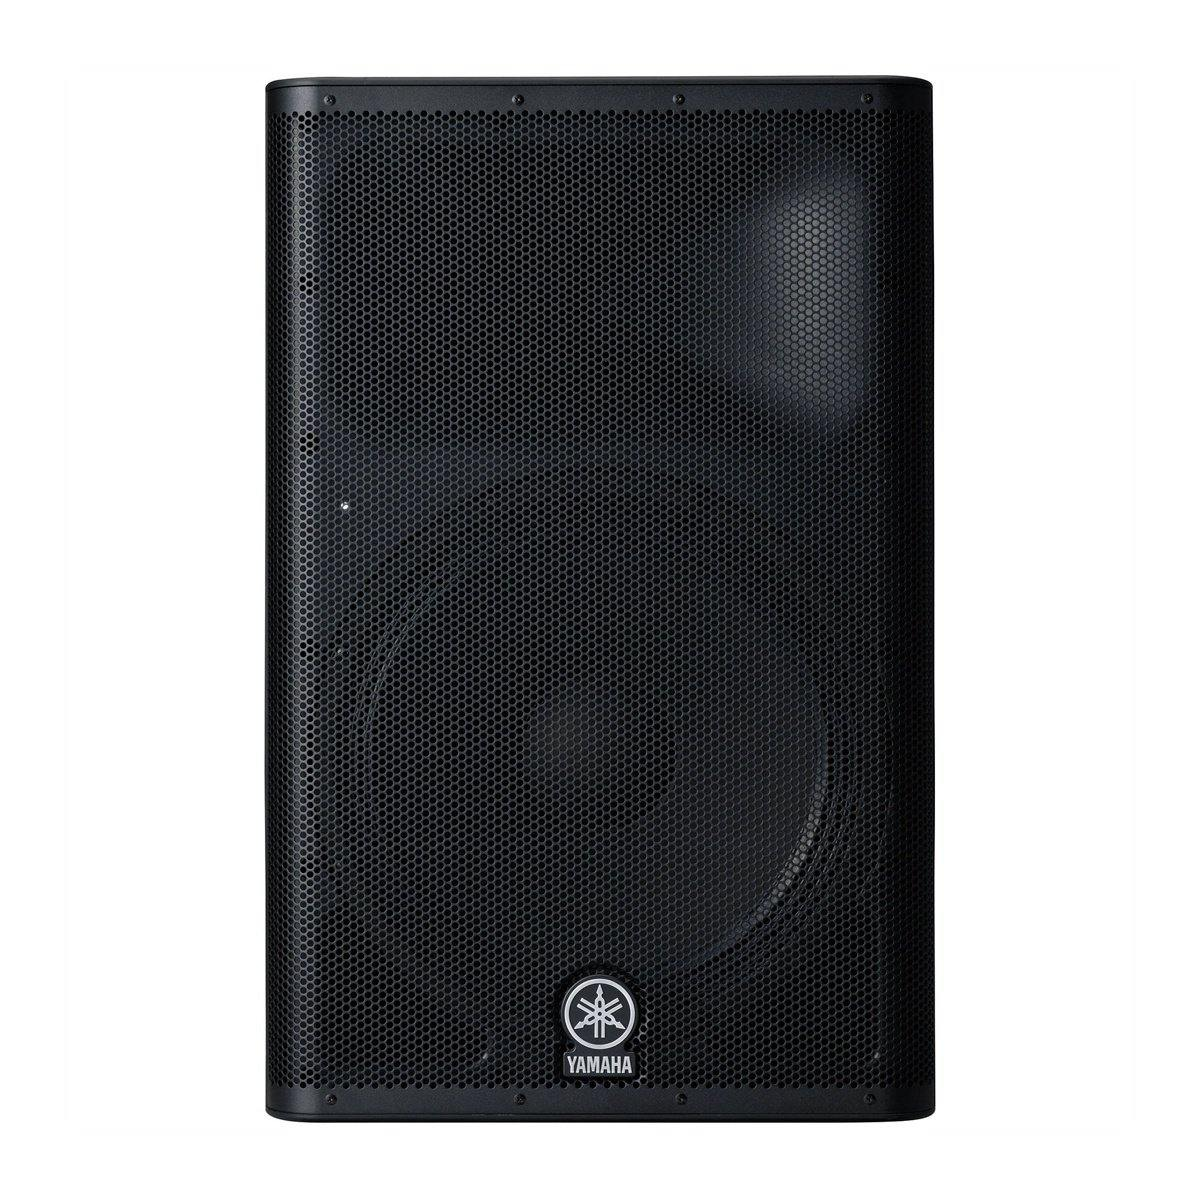 "Yamaha DXR15 MKII Powered 15"" 1100W Loudspeaker - ICONS Shop"